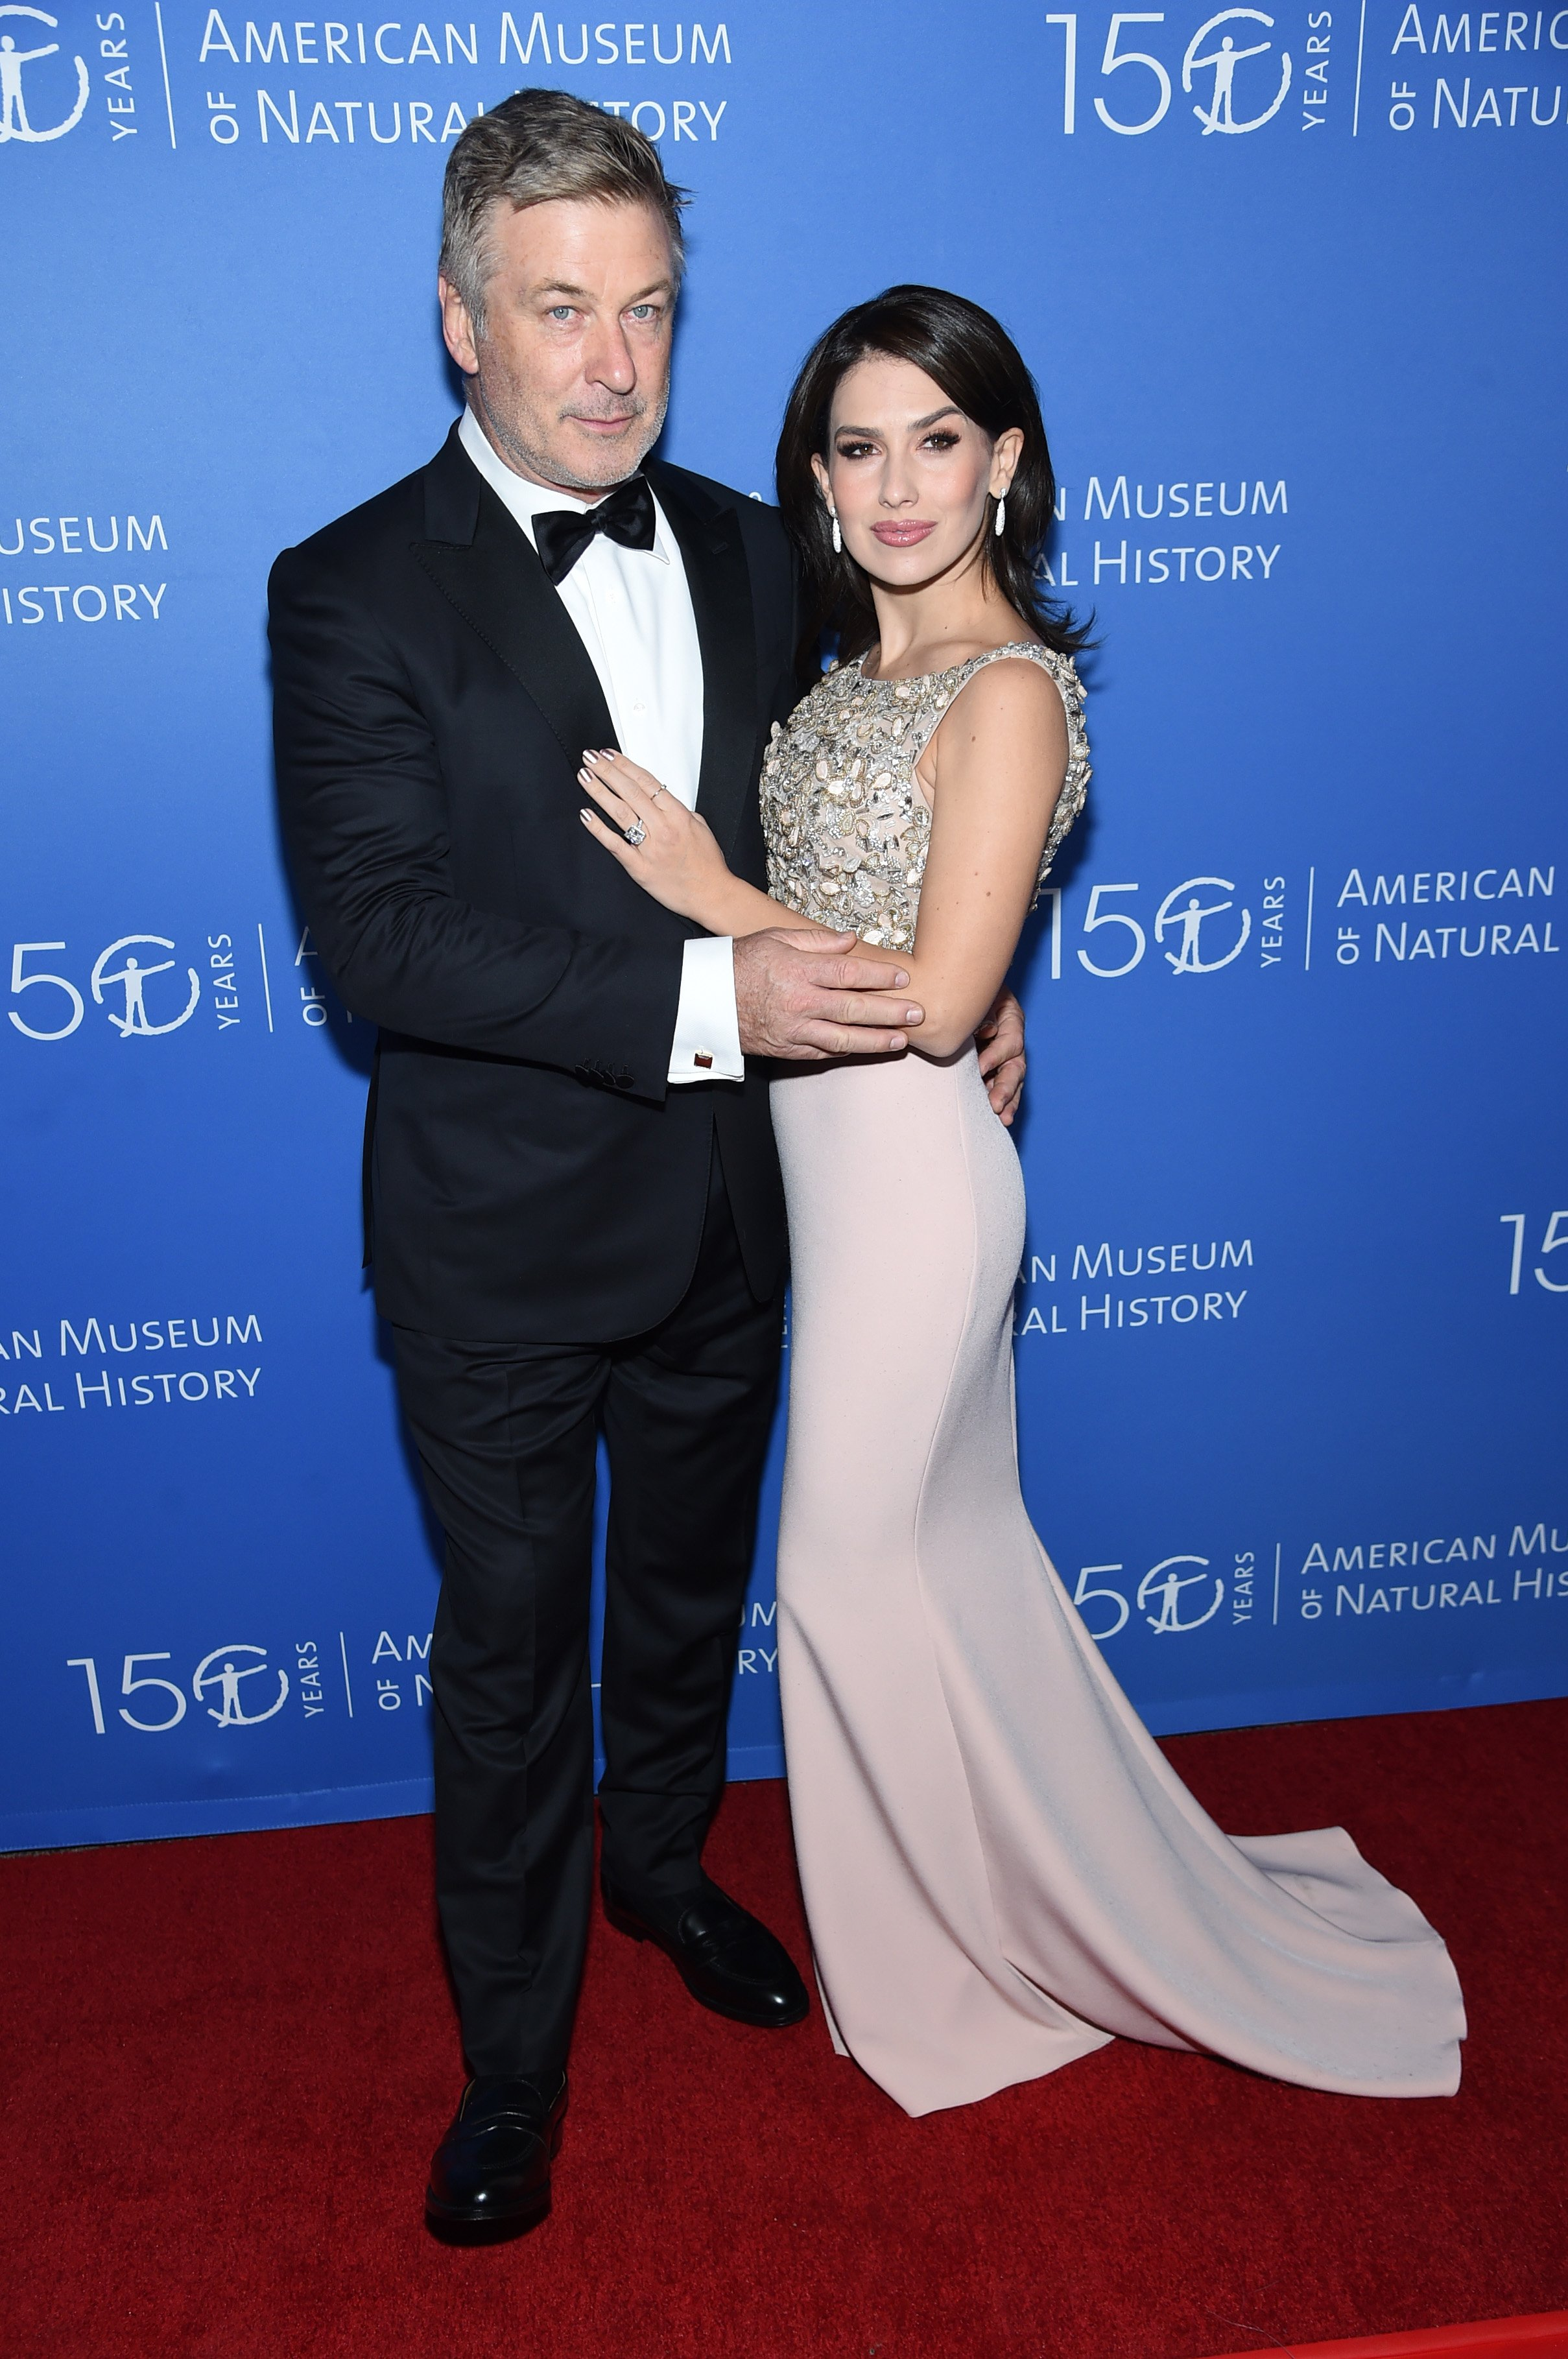 Alec and Hilaria Baldwin attend the American Museum of Natural History Gala in New York City on November 21, 2019 | Photo: Getty Images